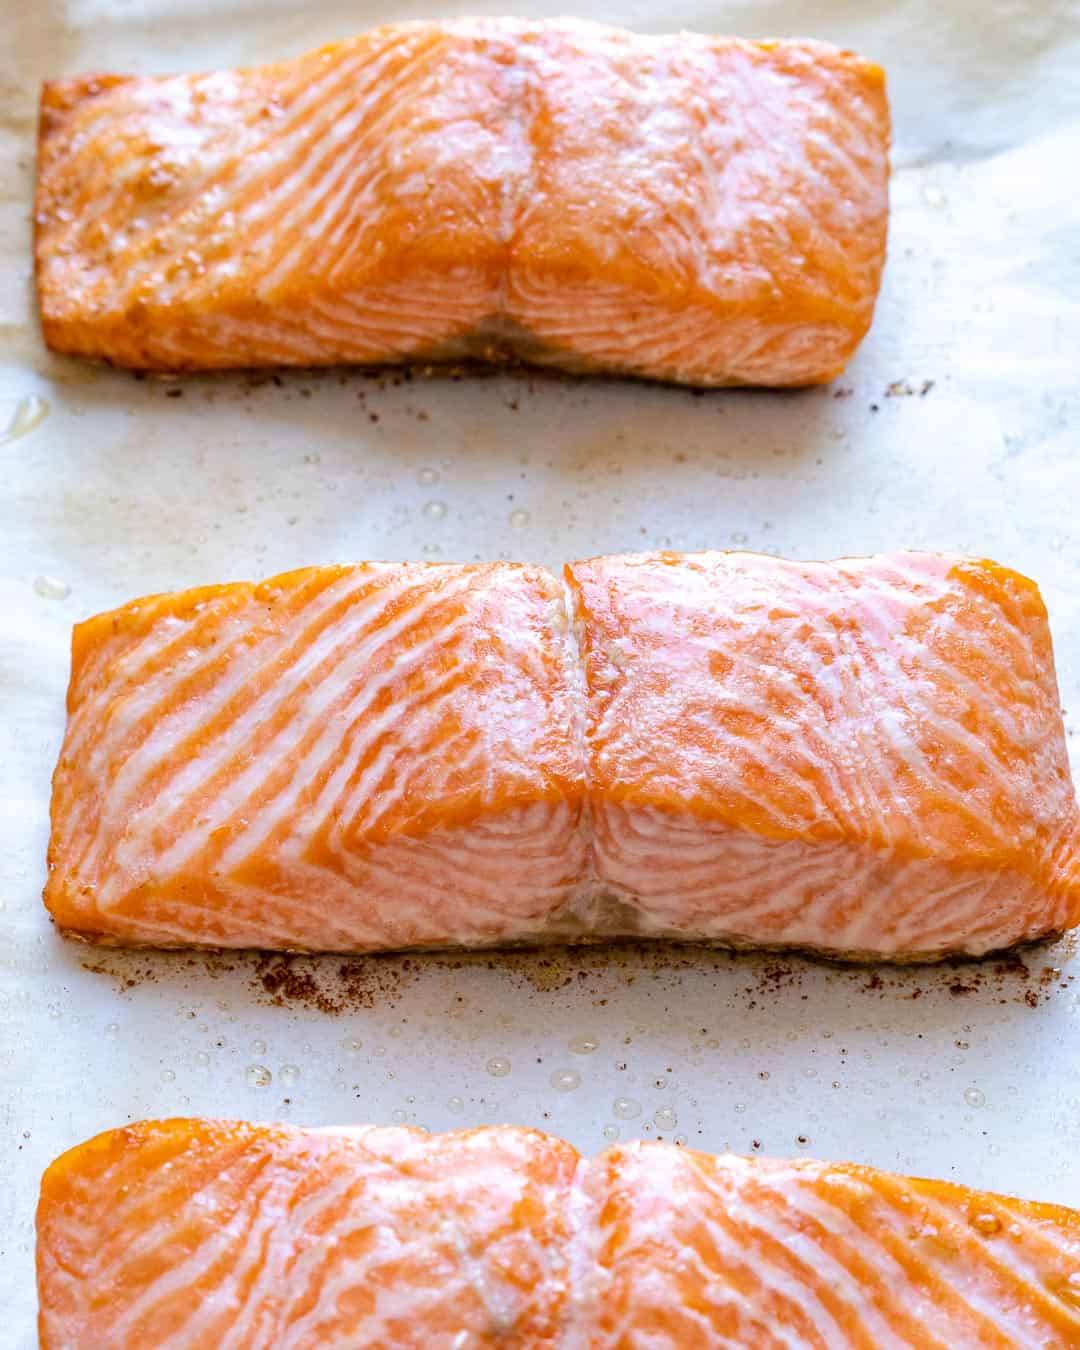 Salmon filets cooking in hot skillet